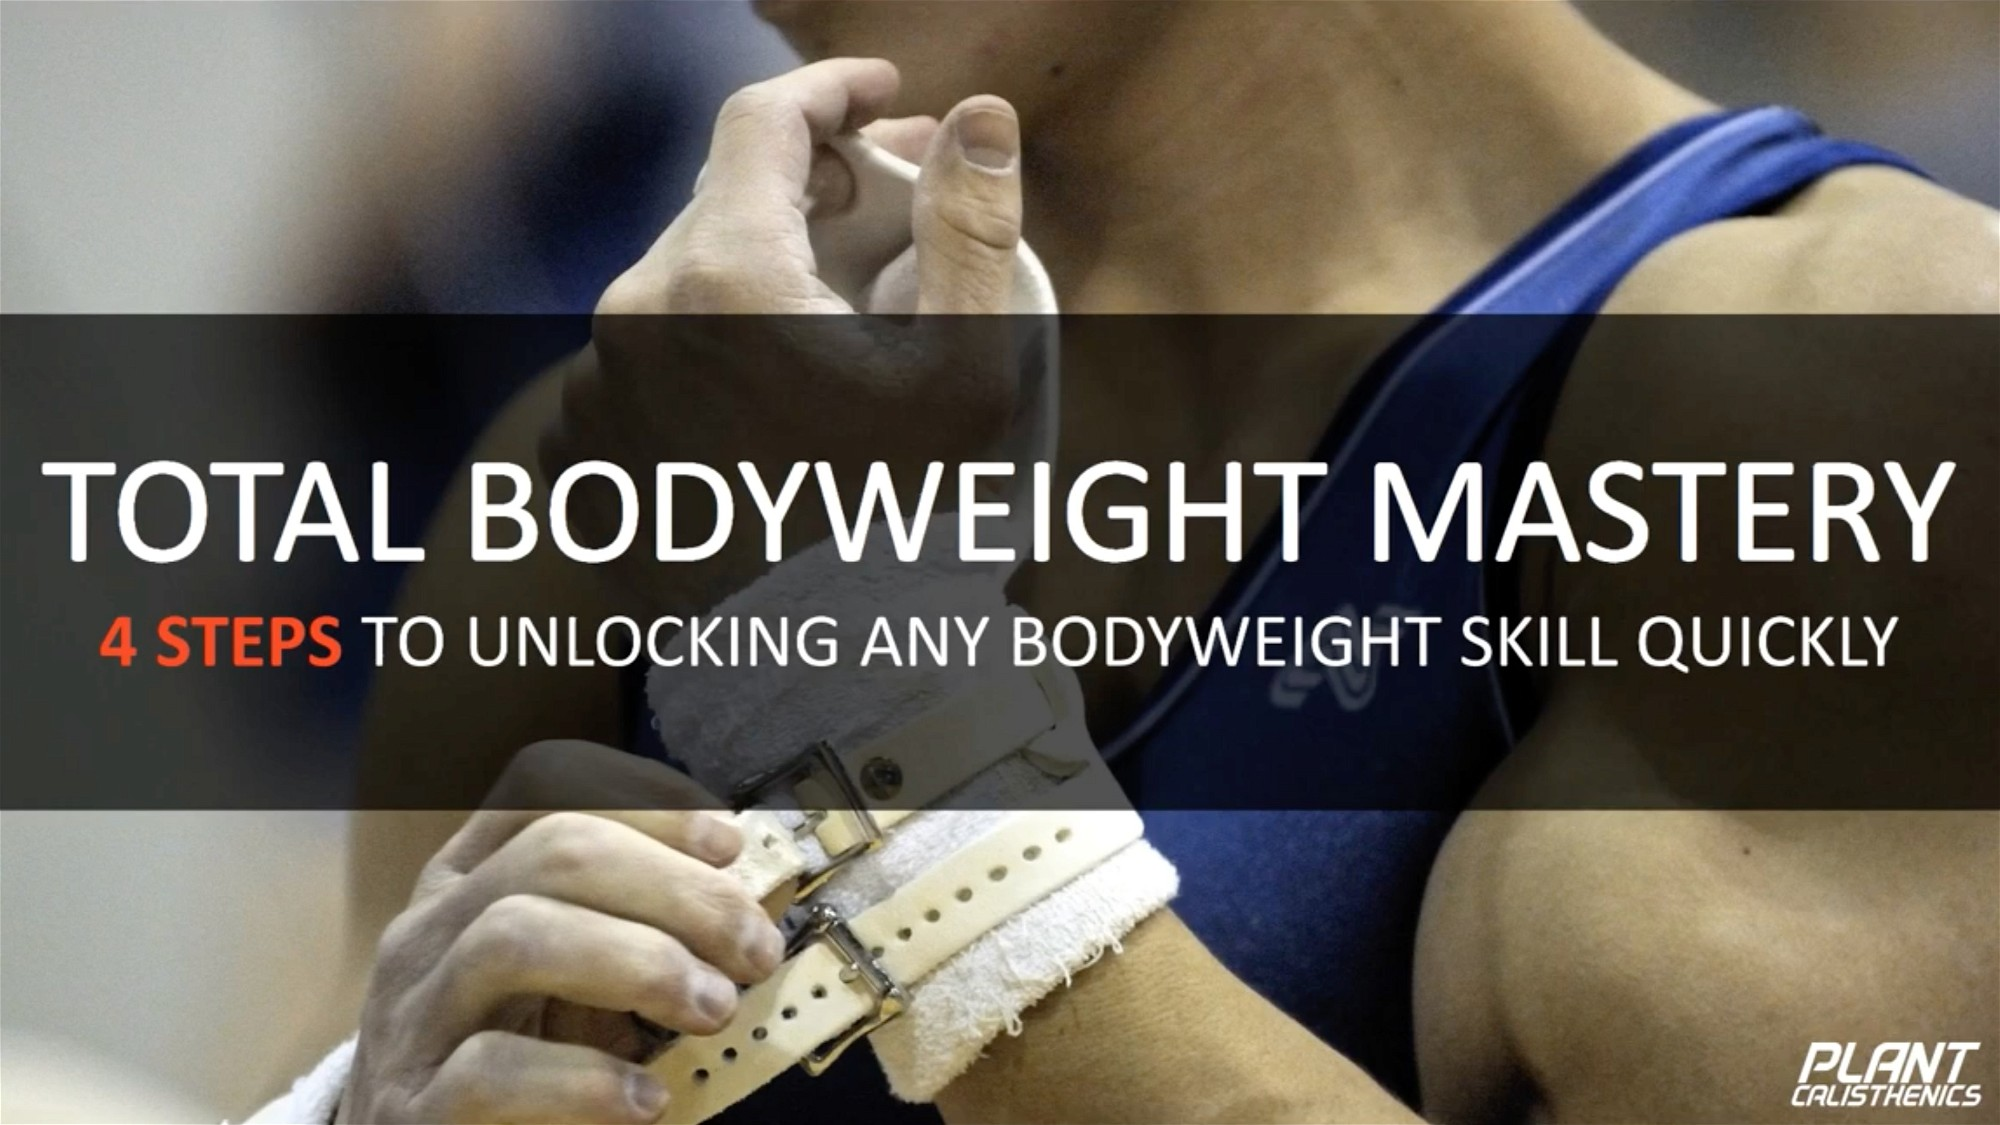 AppSumo Deal for Total Bodyweight Mastery Masterclass: 4 Steps To Unlock ANY Bodyweight Skill